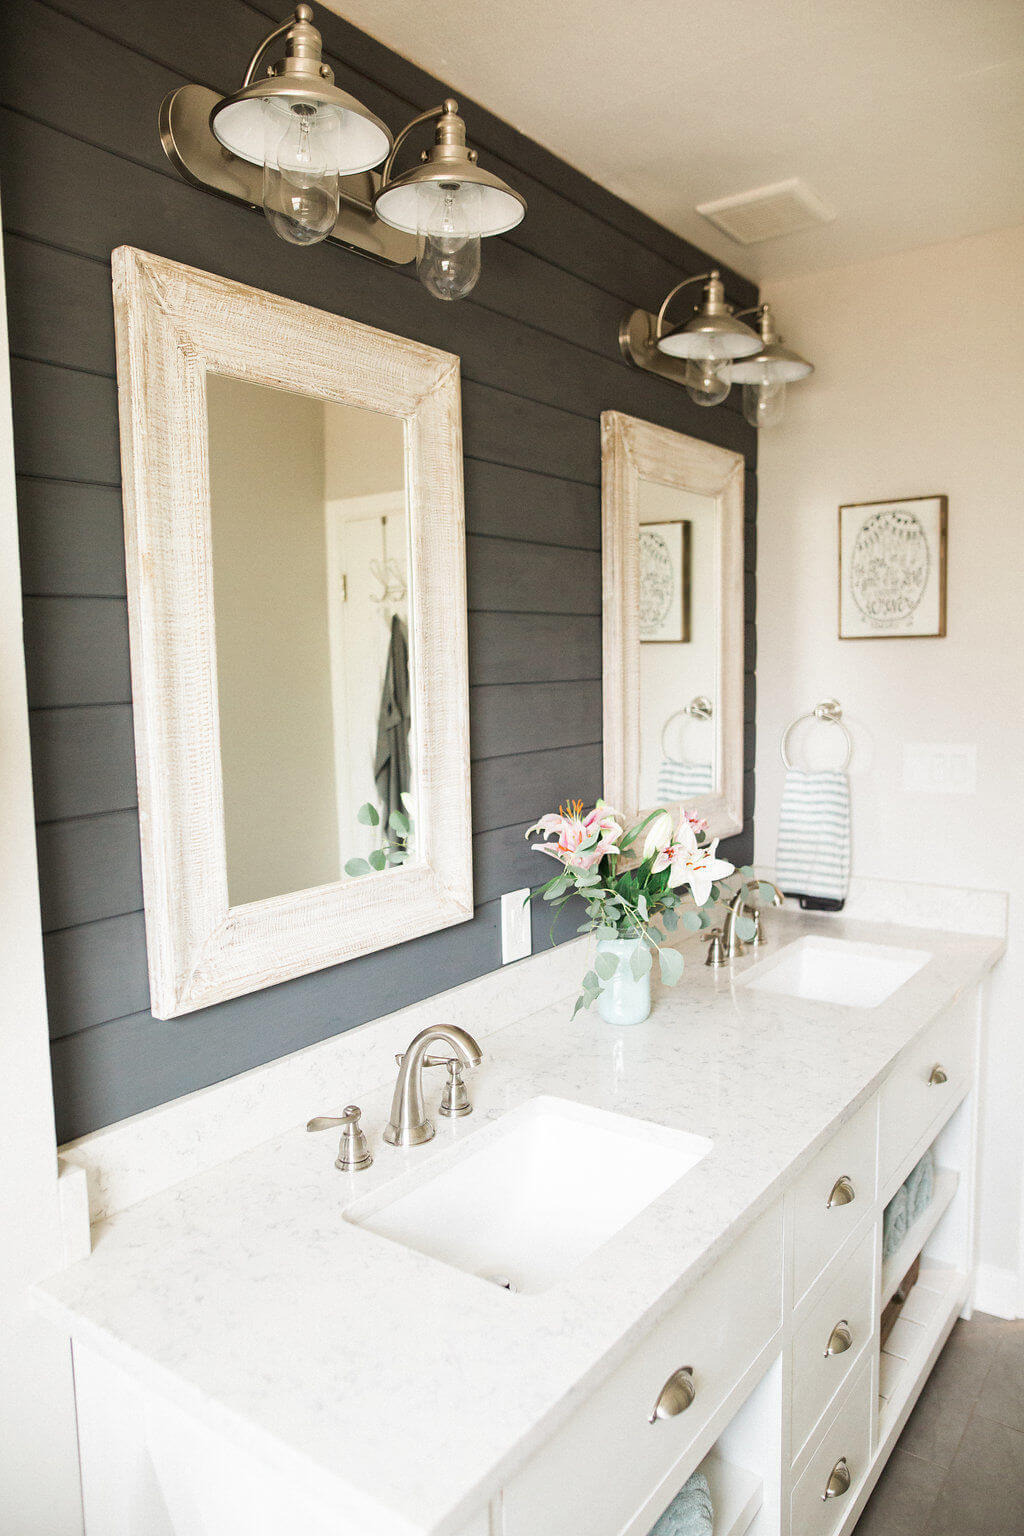 23 master bathroom ideas homebnc